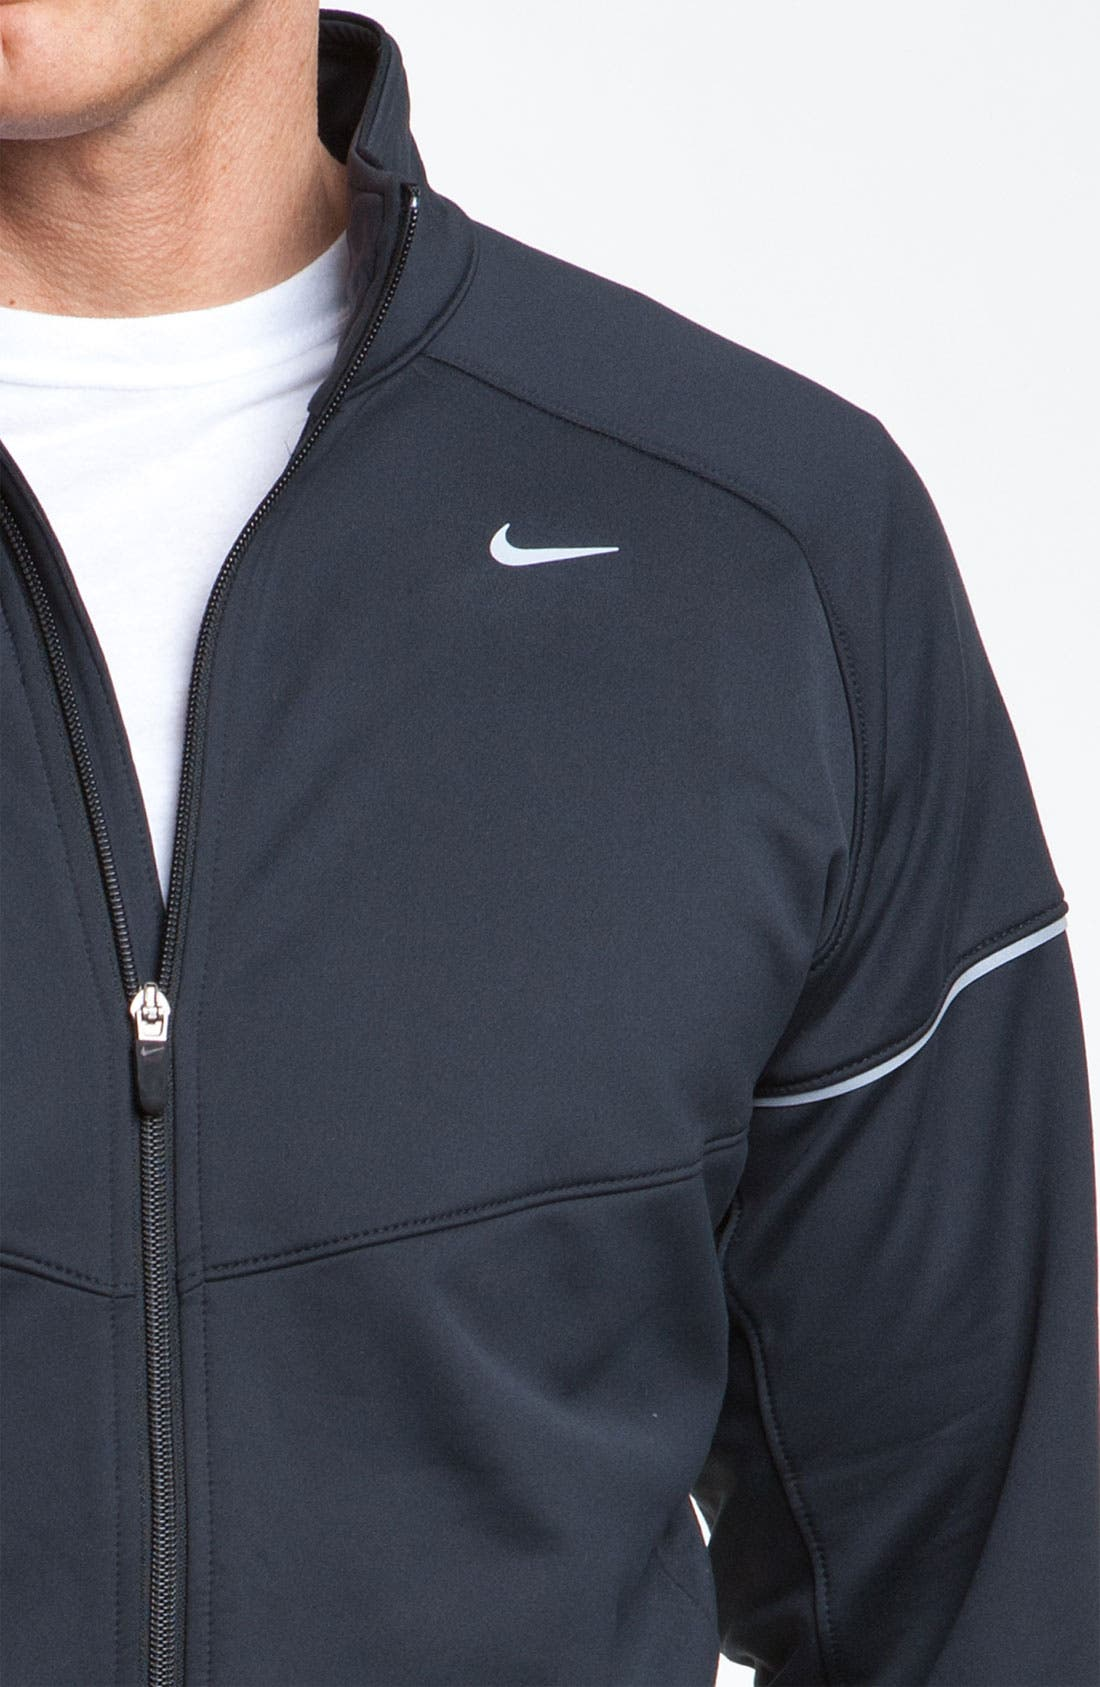 Alternate Image 2  - Nike 'Element' Thermal Dri-FIT Water Resistant Running Jacket